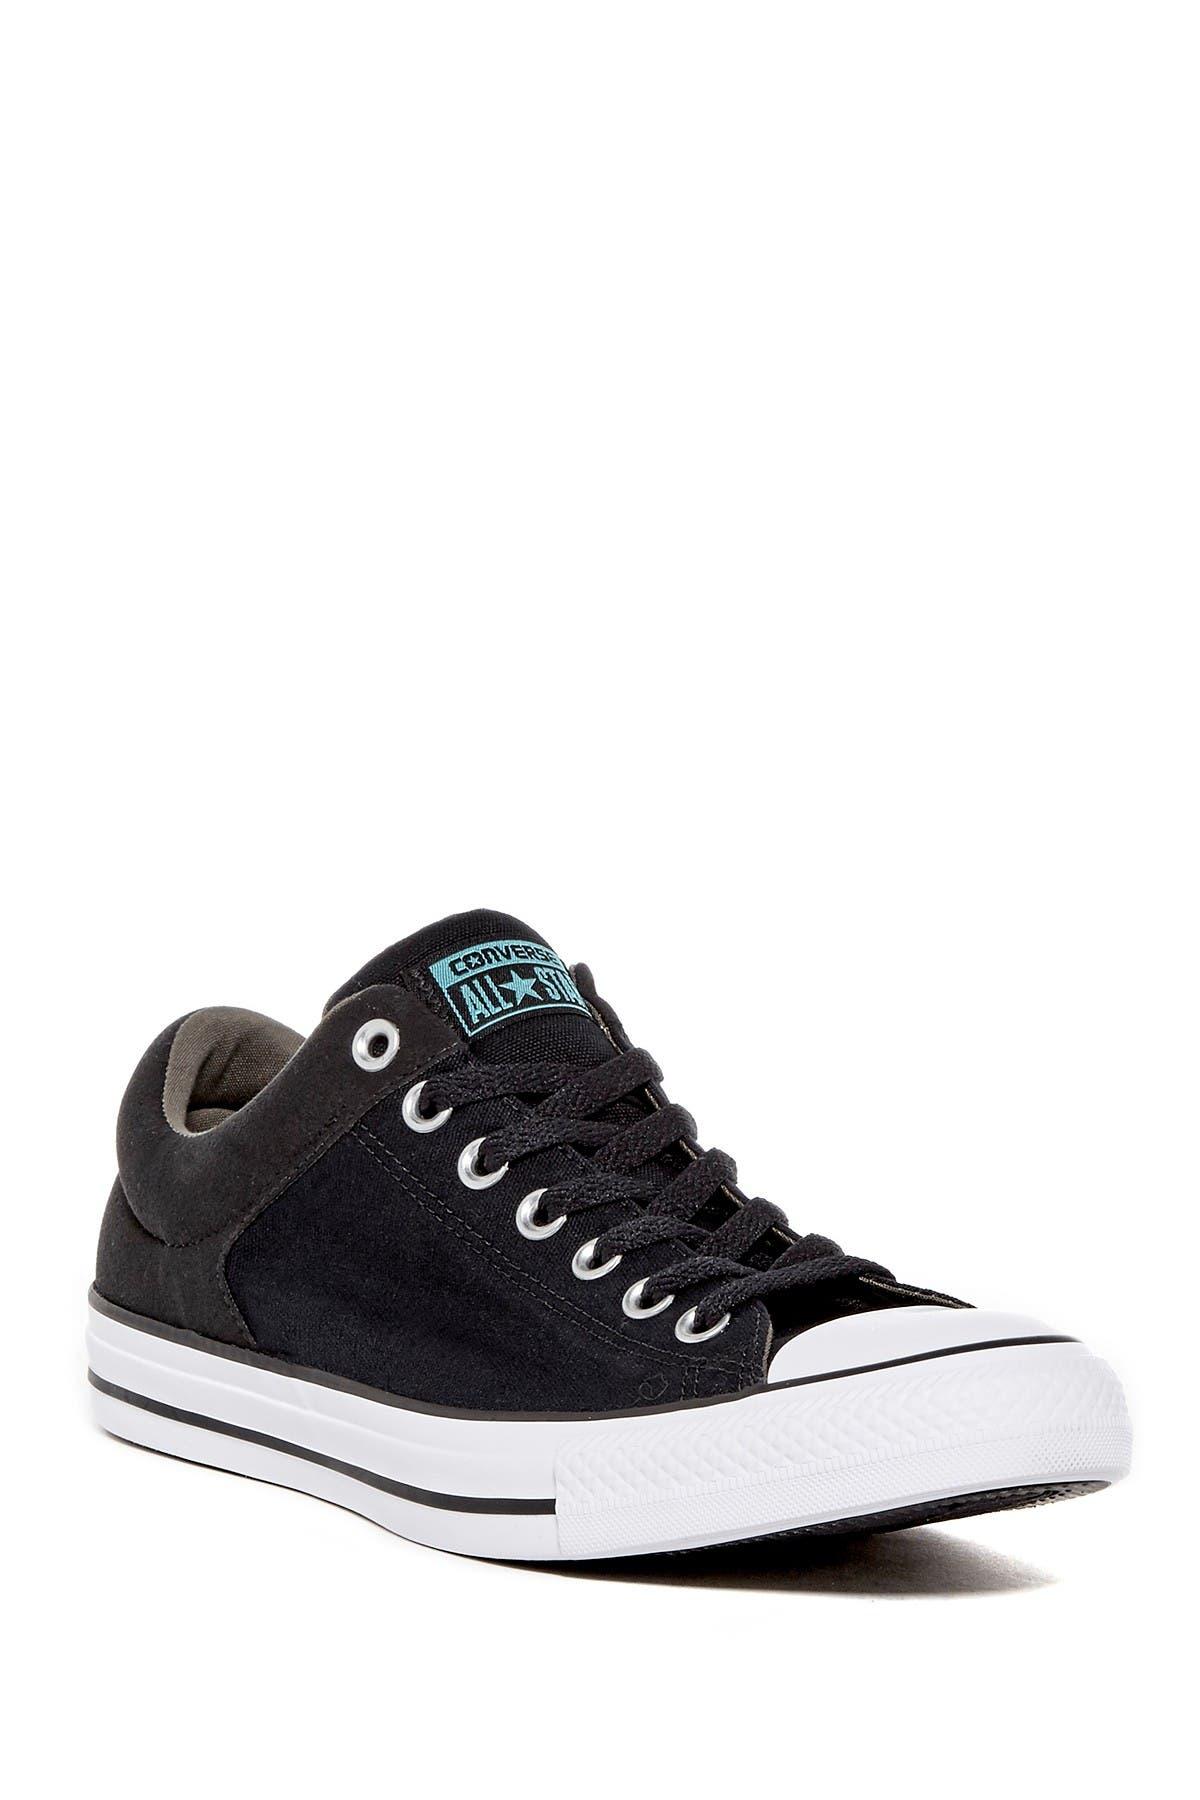 Image of Converse Chuck Taylor High Street Oxford Sneaker